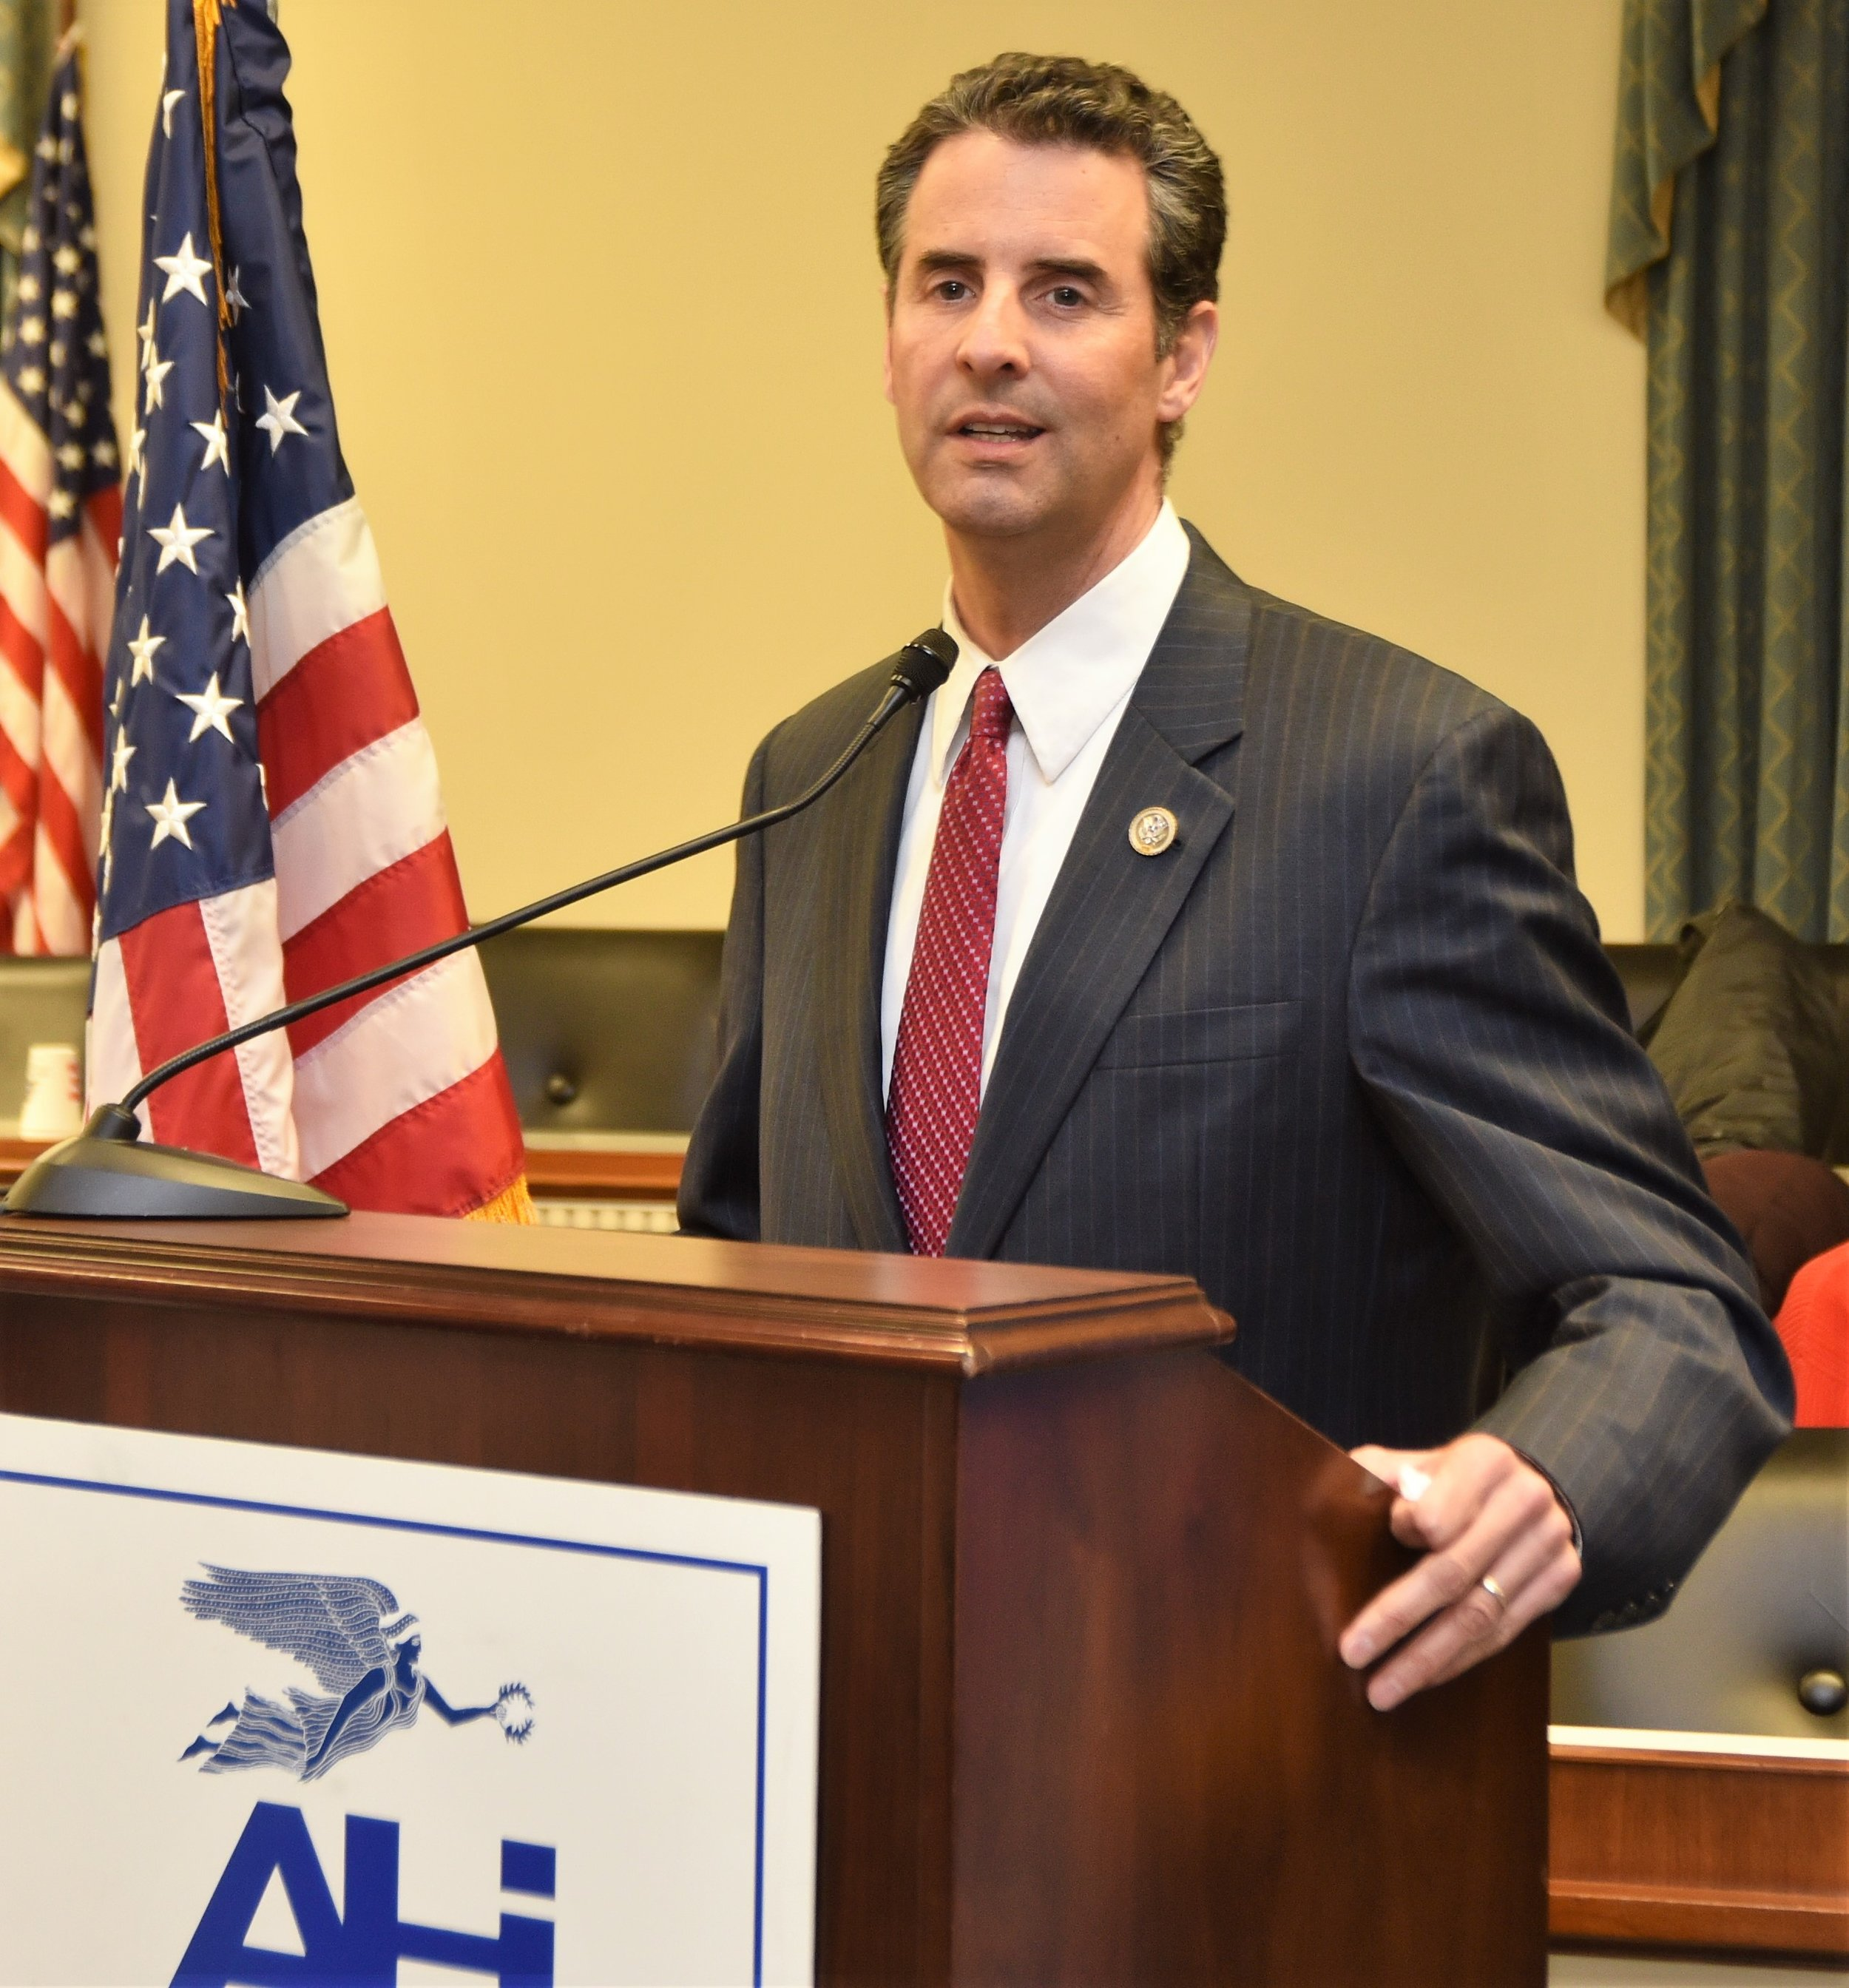 Rep. John Sarbanes (MD-03)